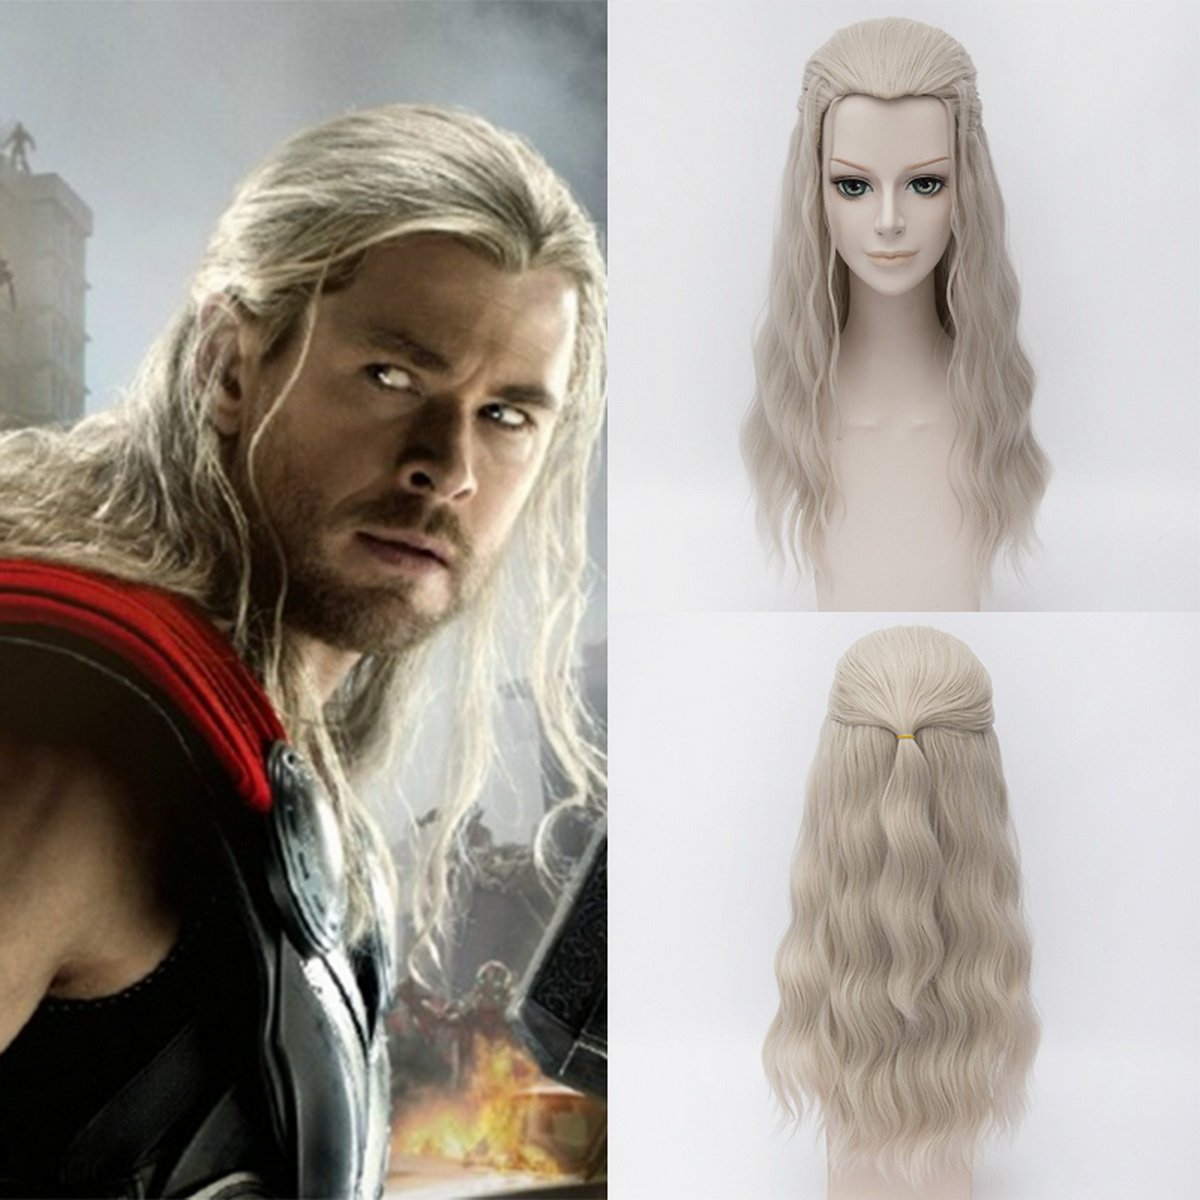 Men's Avengers Thor Costume Light Blonde Long Length Wig - DeluxeAdultCostumes.com